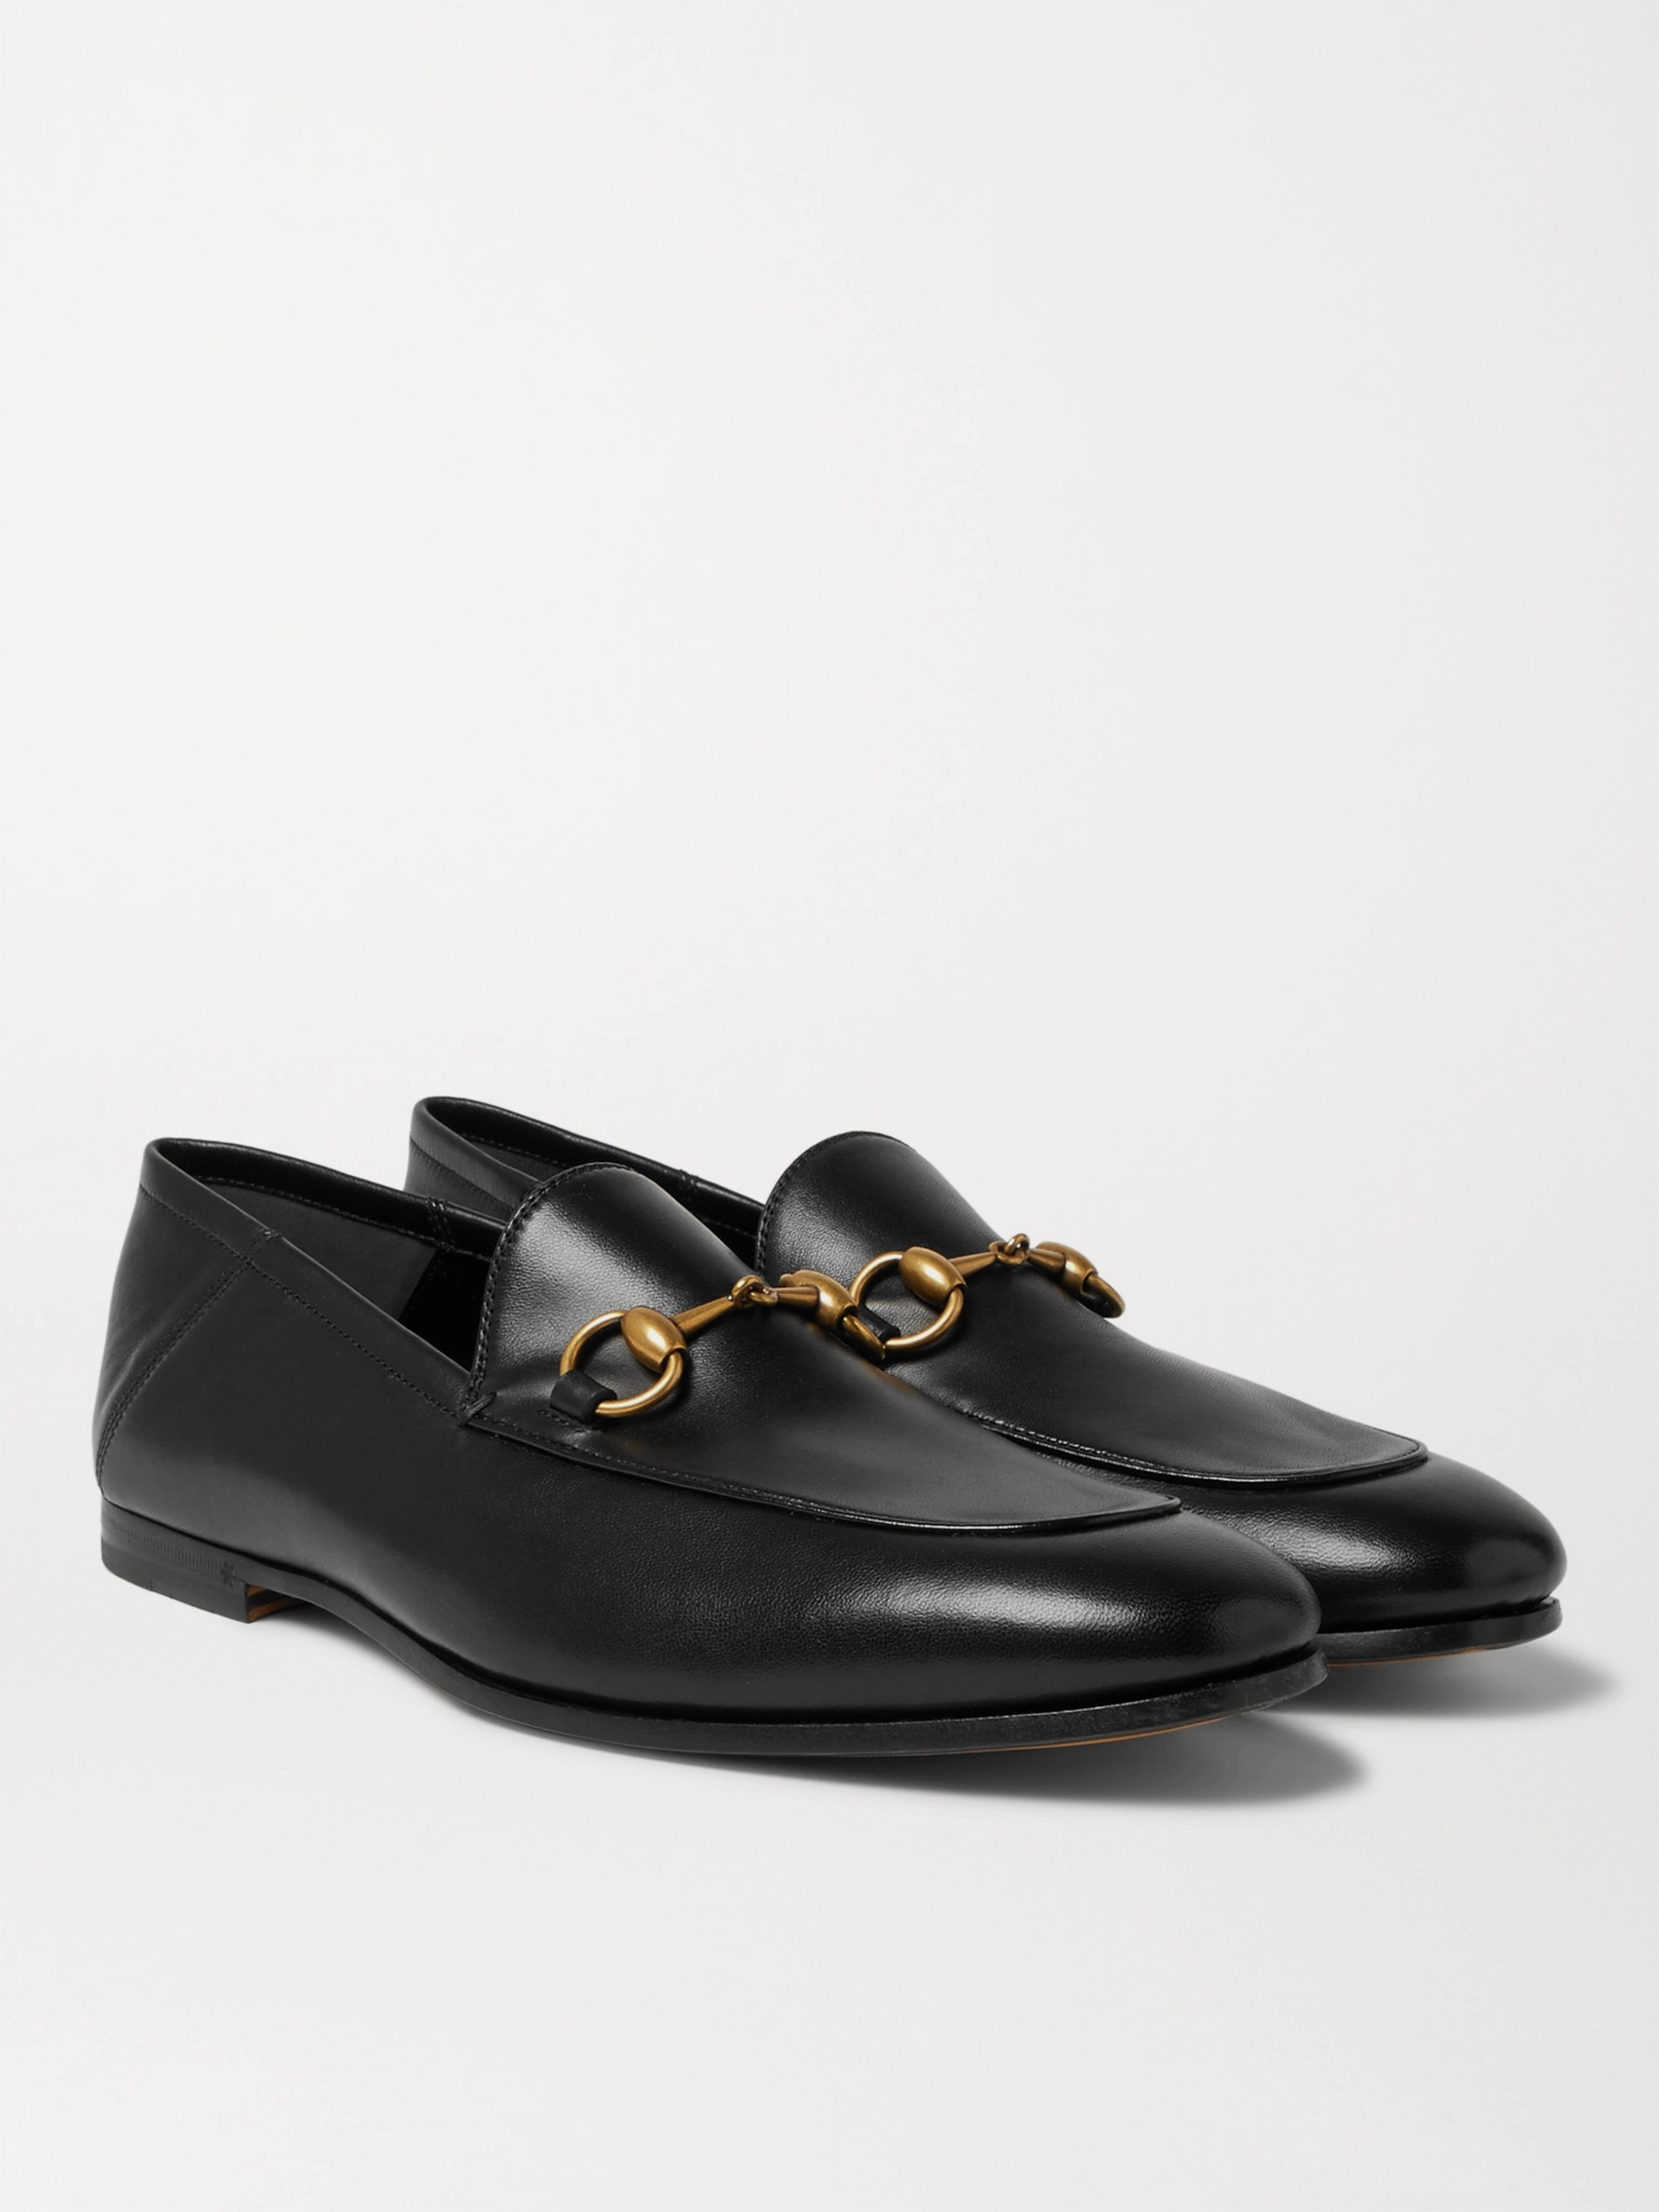 74e9a2c83 Black Brixton Horsebit Collapsible-Heel Leather Loafers | Gucci | MR ...